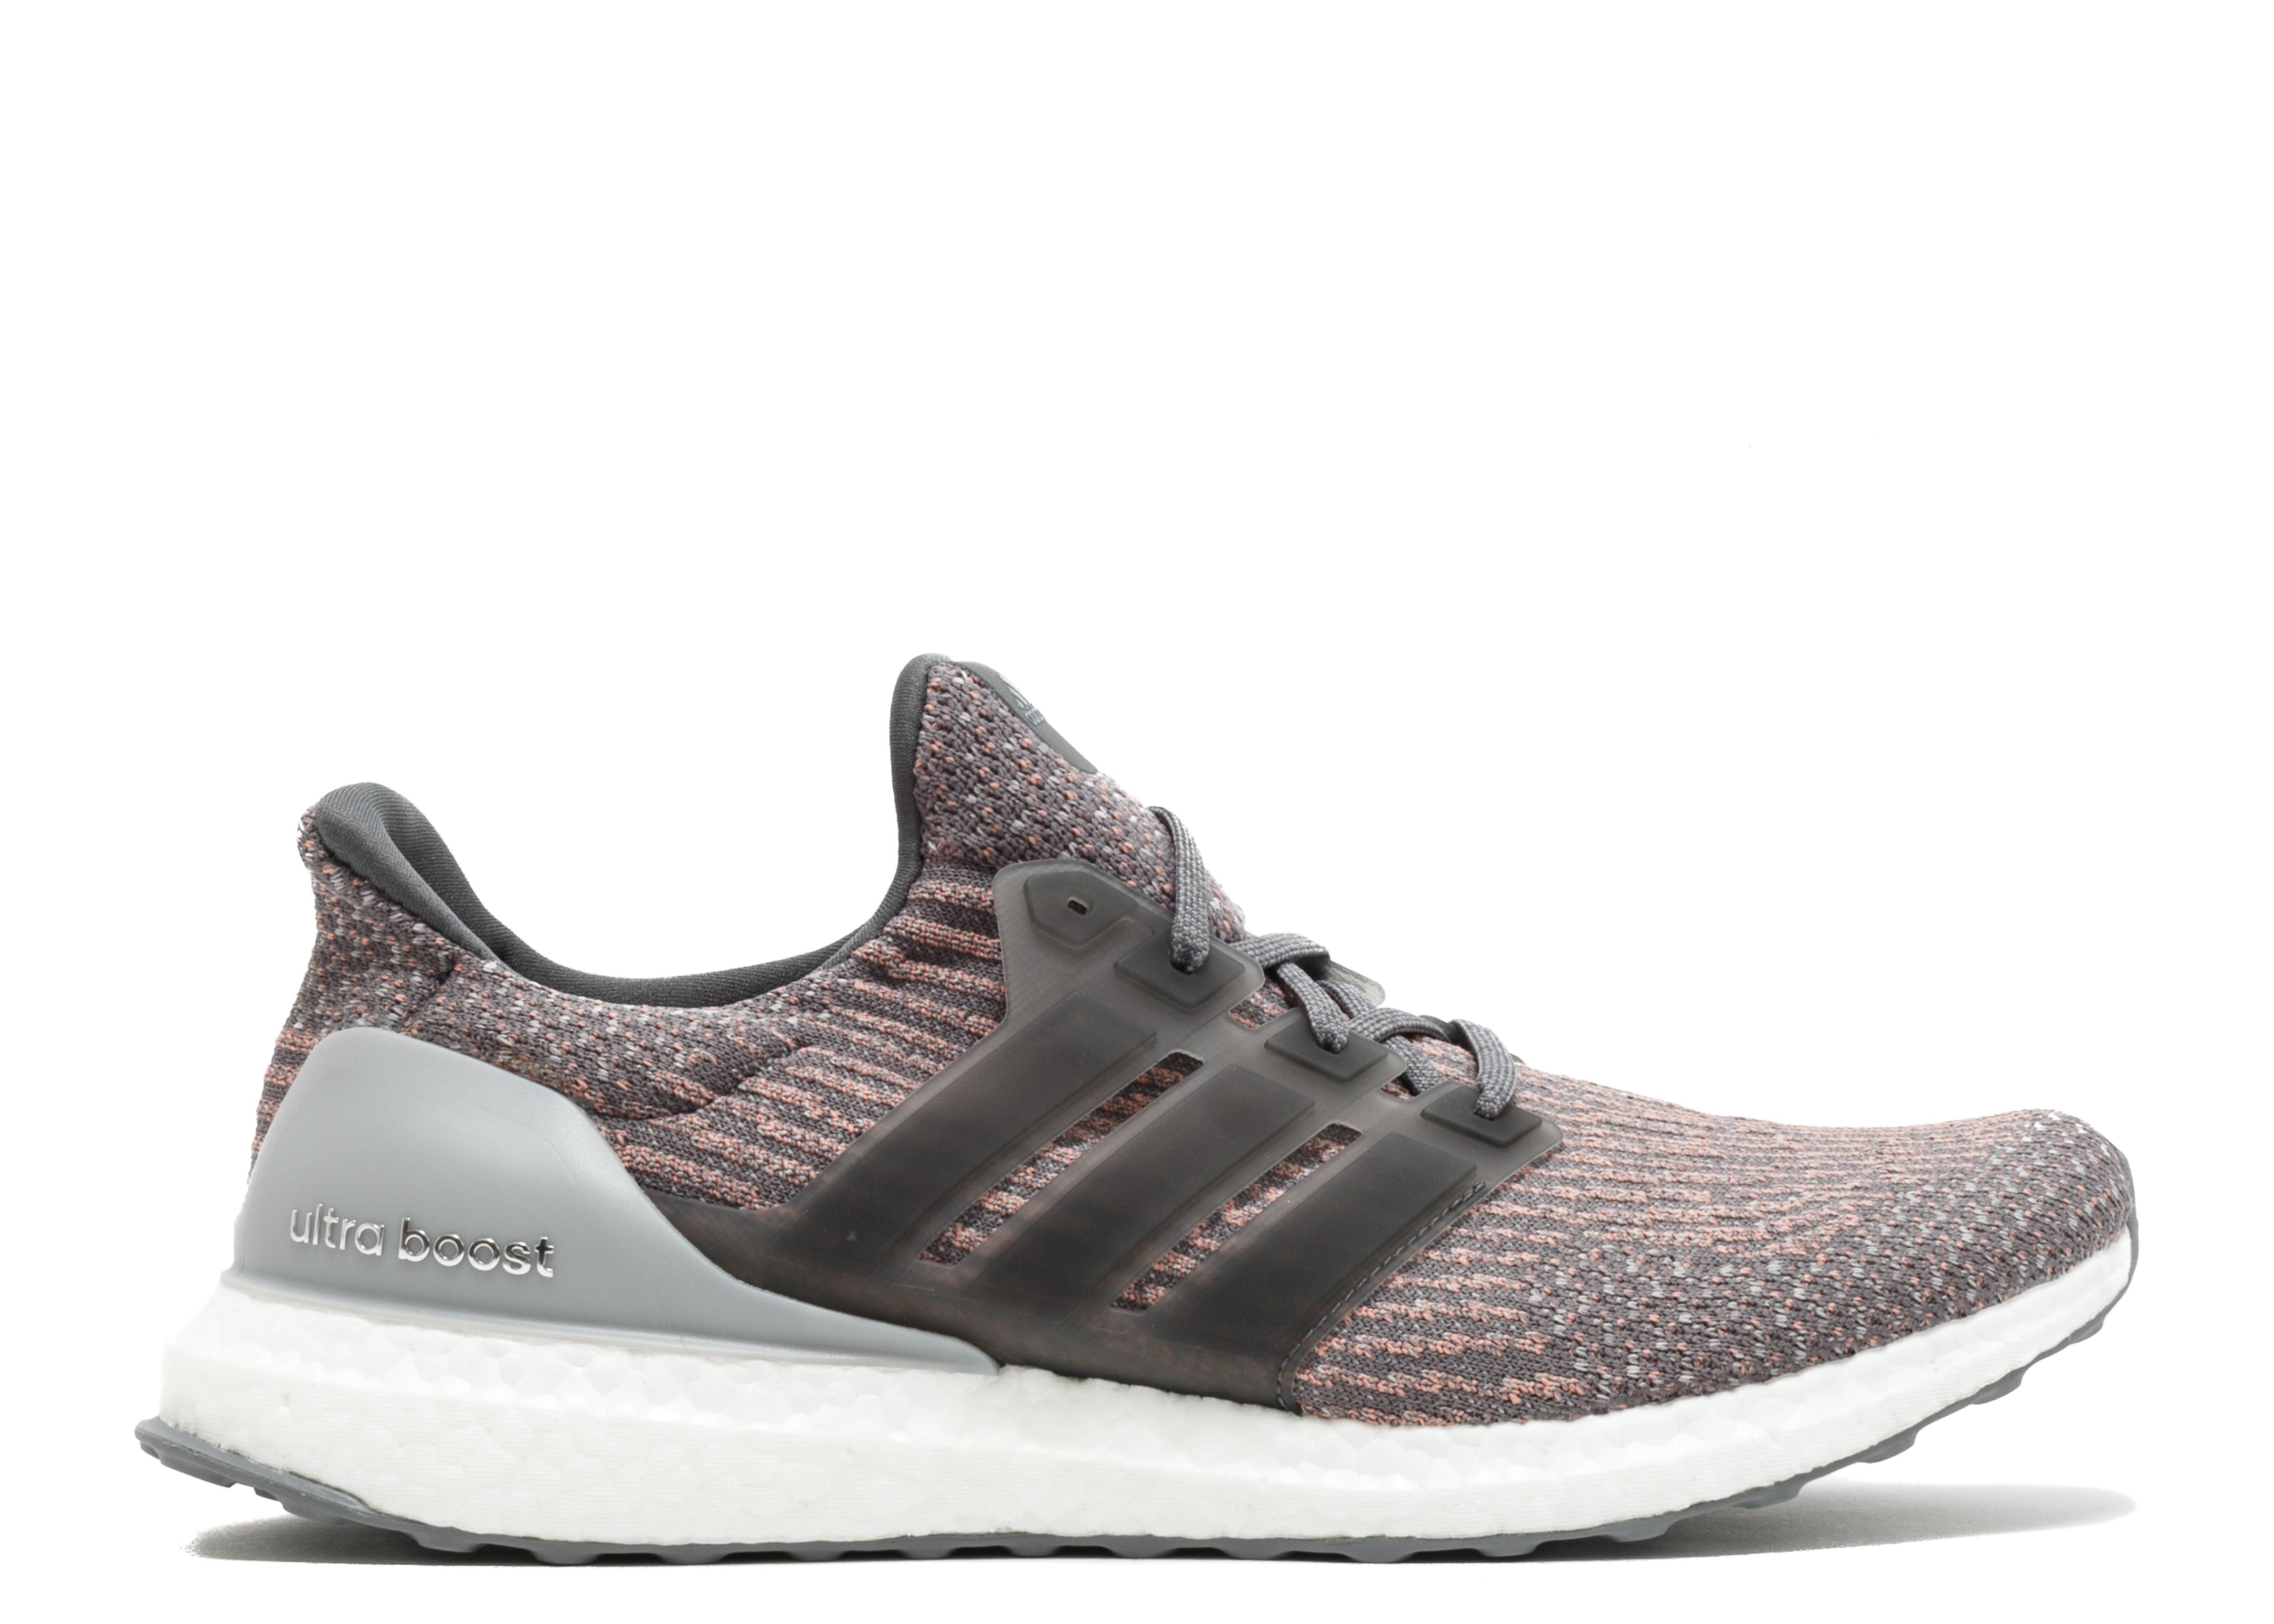 best sneakers 5192e 5be82 Ultra Boost - Adidas - s82022 - grey fourgrey fourtrace pink  Flight Club